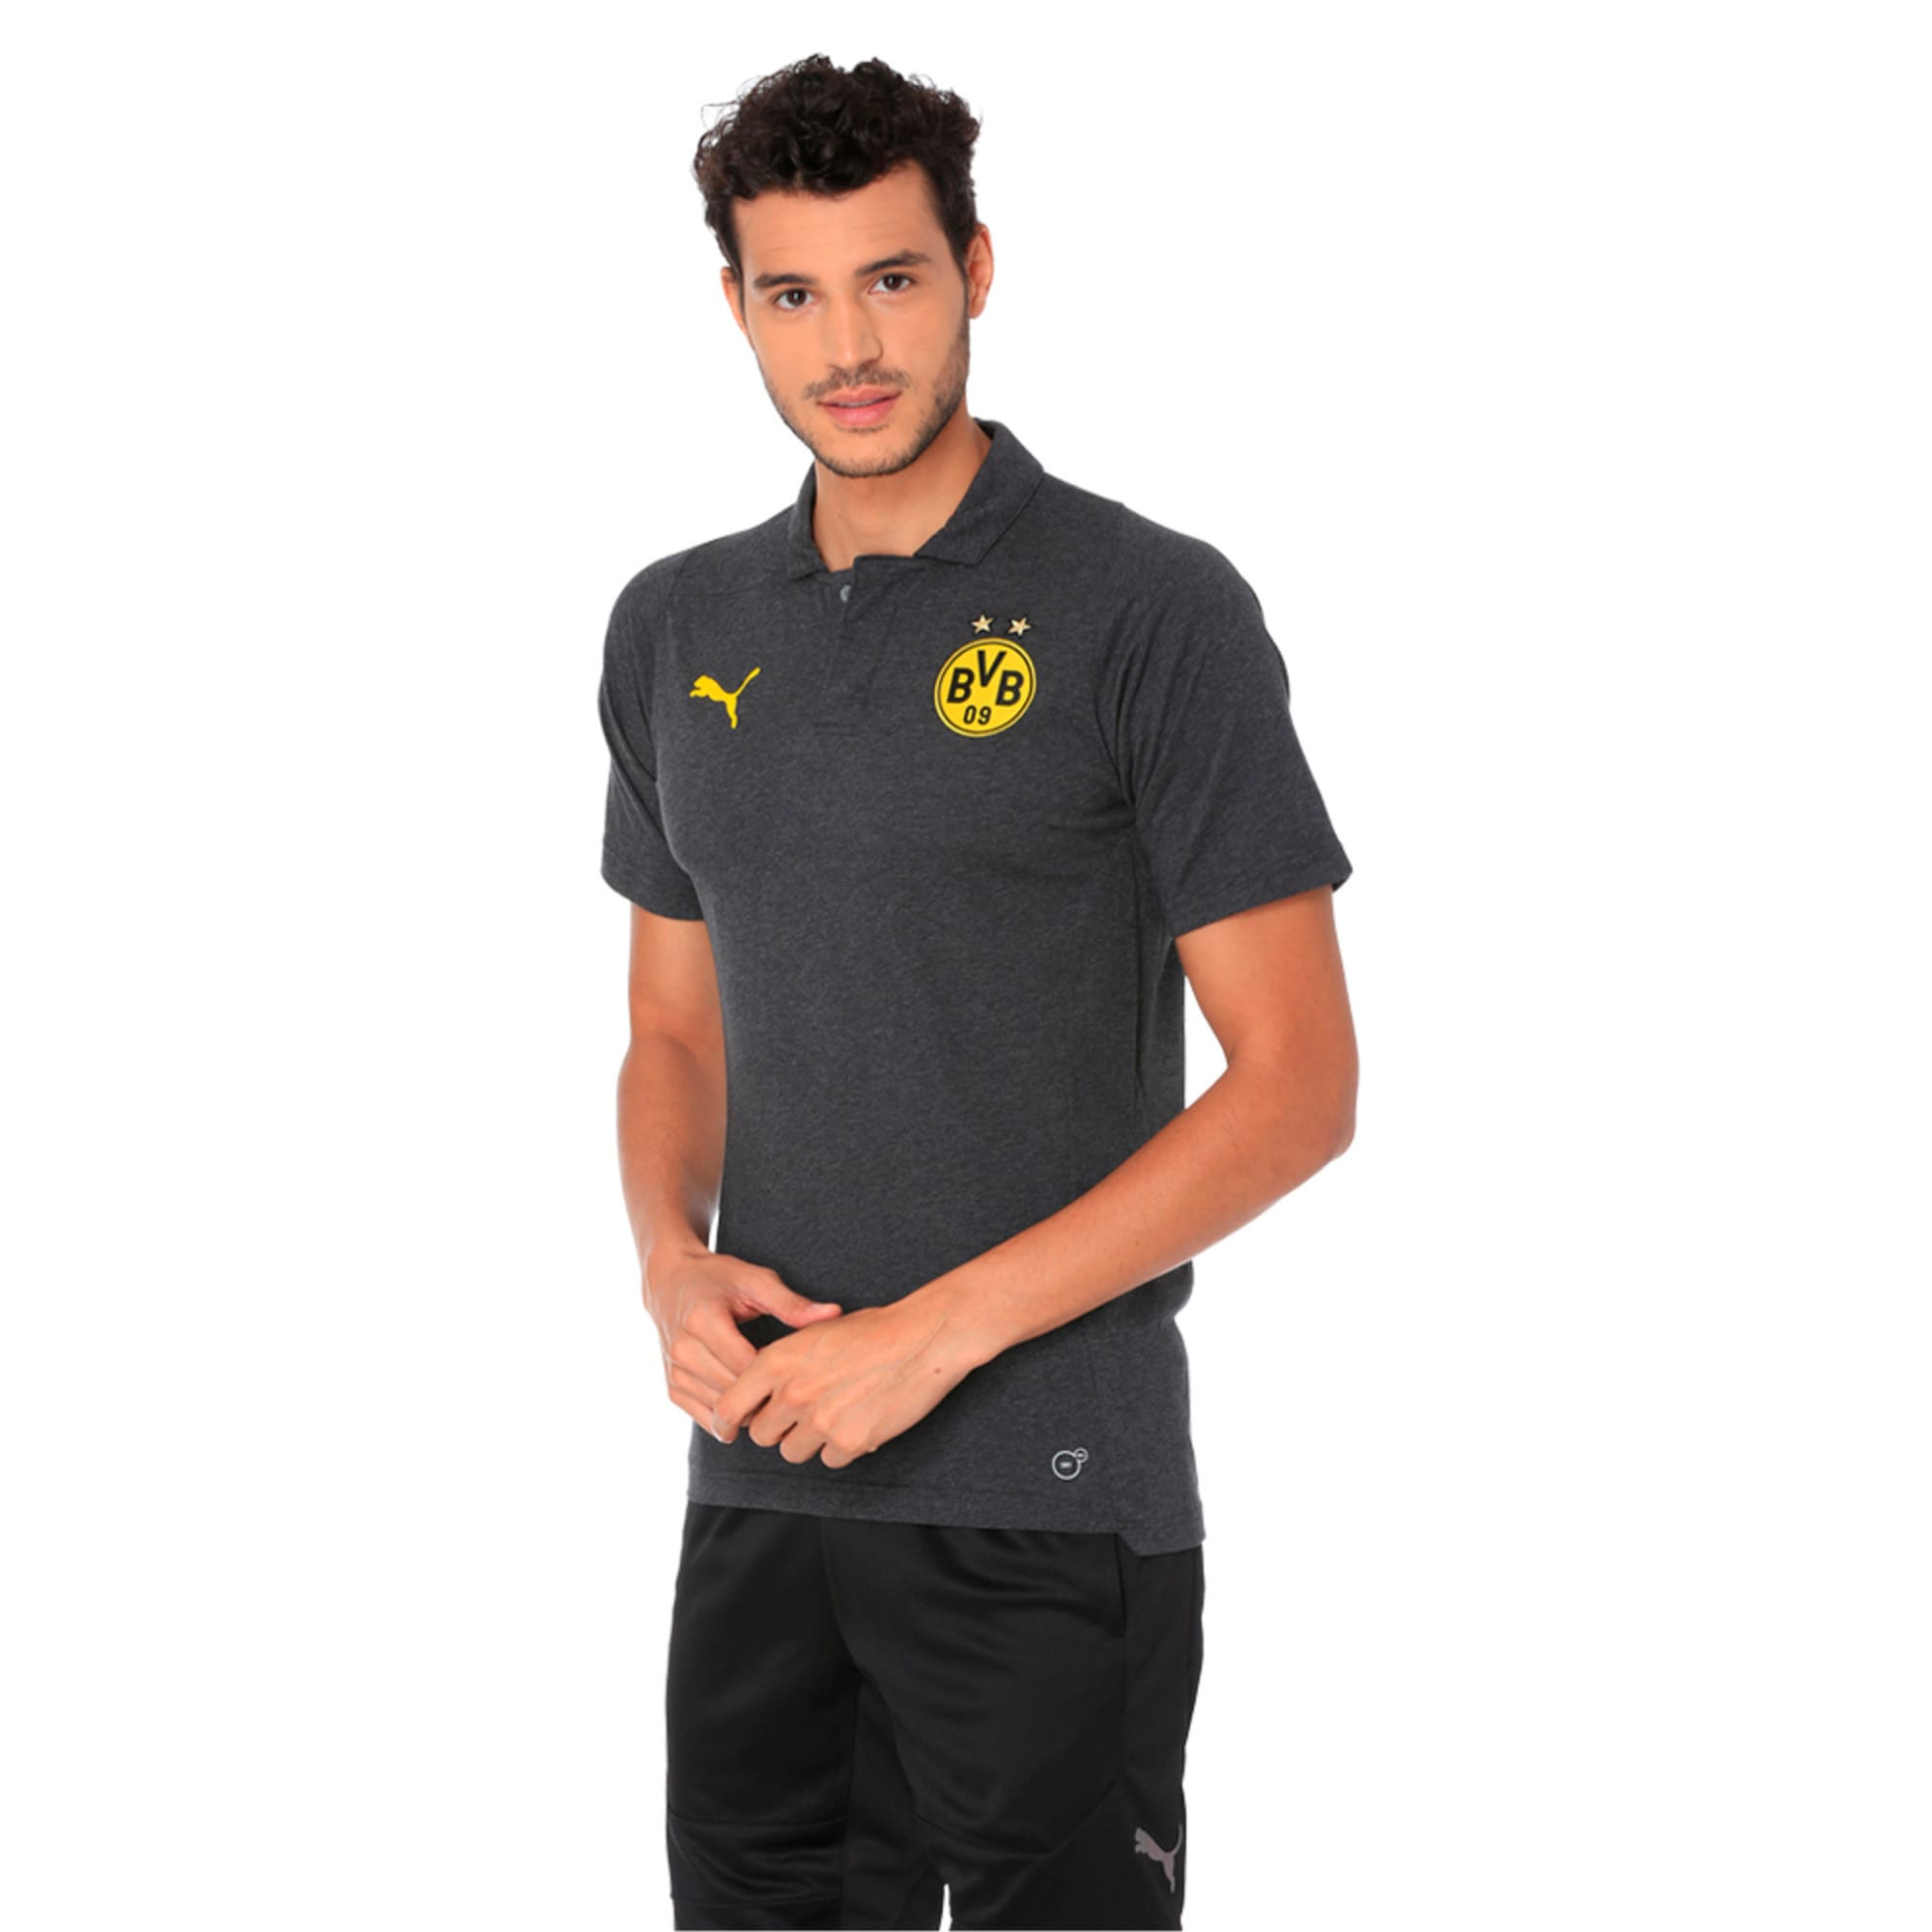 Thumbnail 1 of BVB Casual Polo without Sponsor Logo Pum, Dark Gray Heather, medium-IND